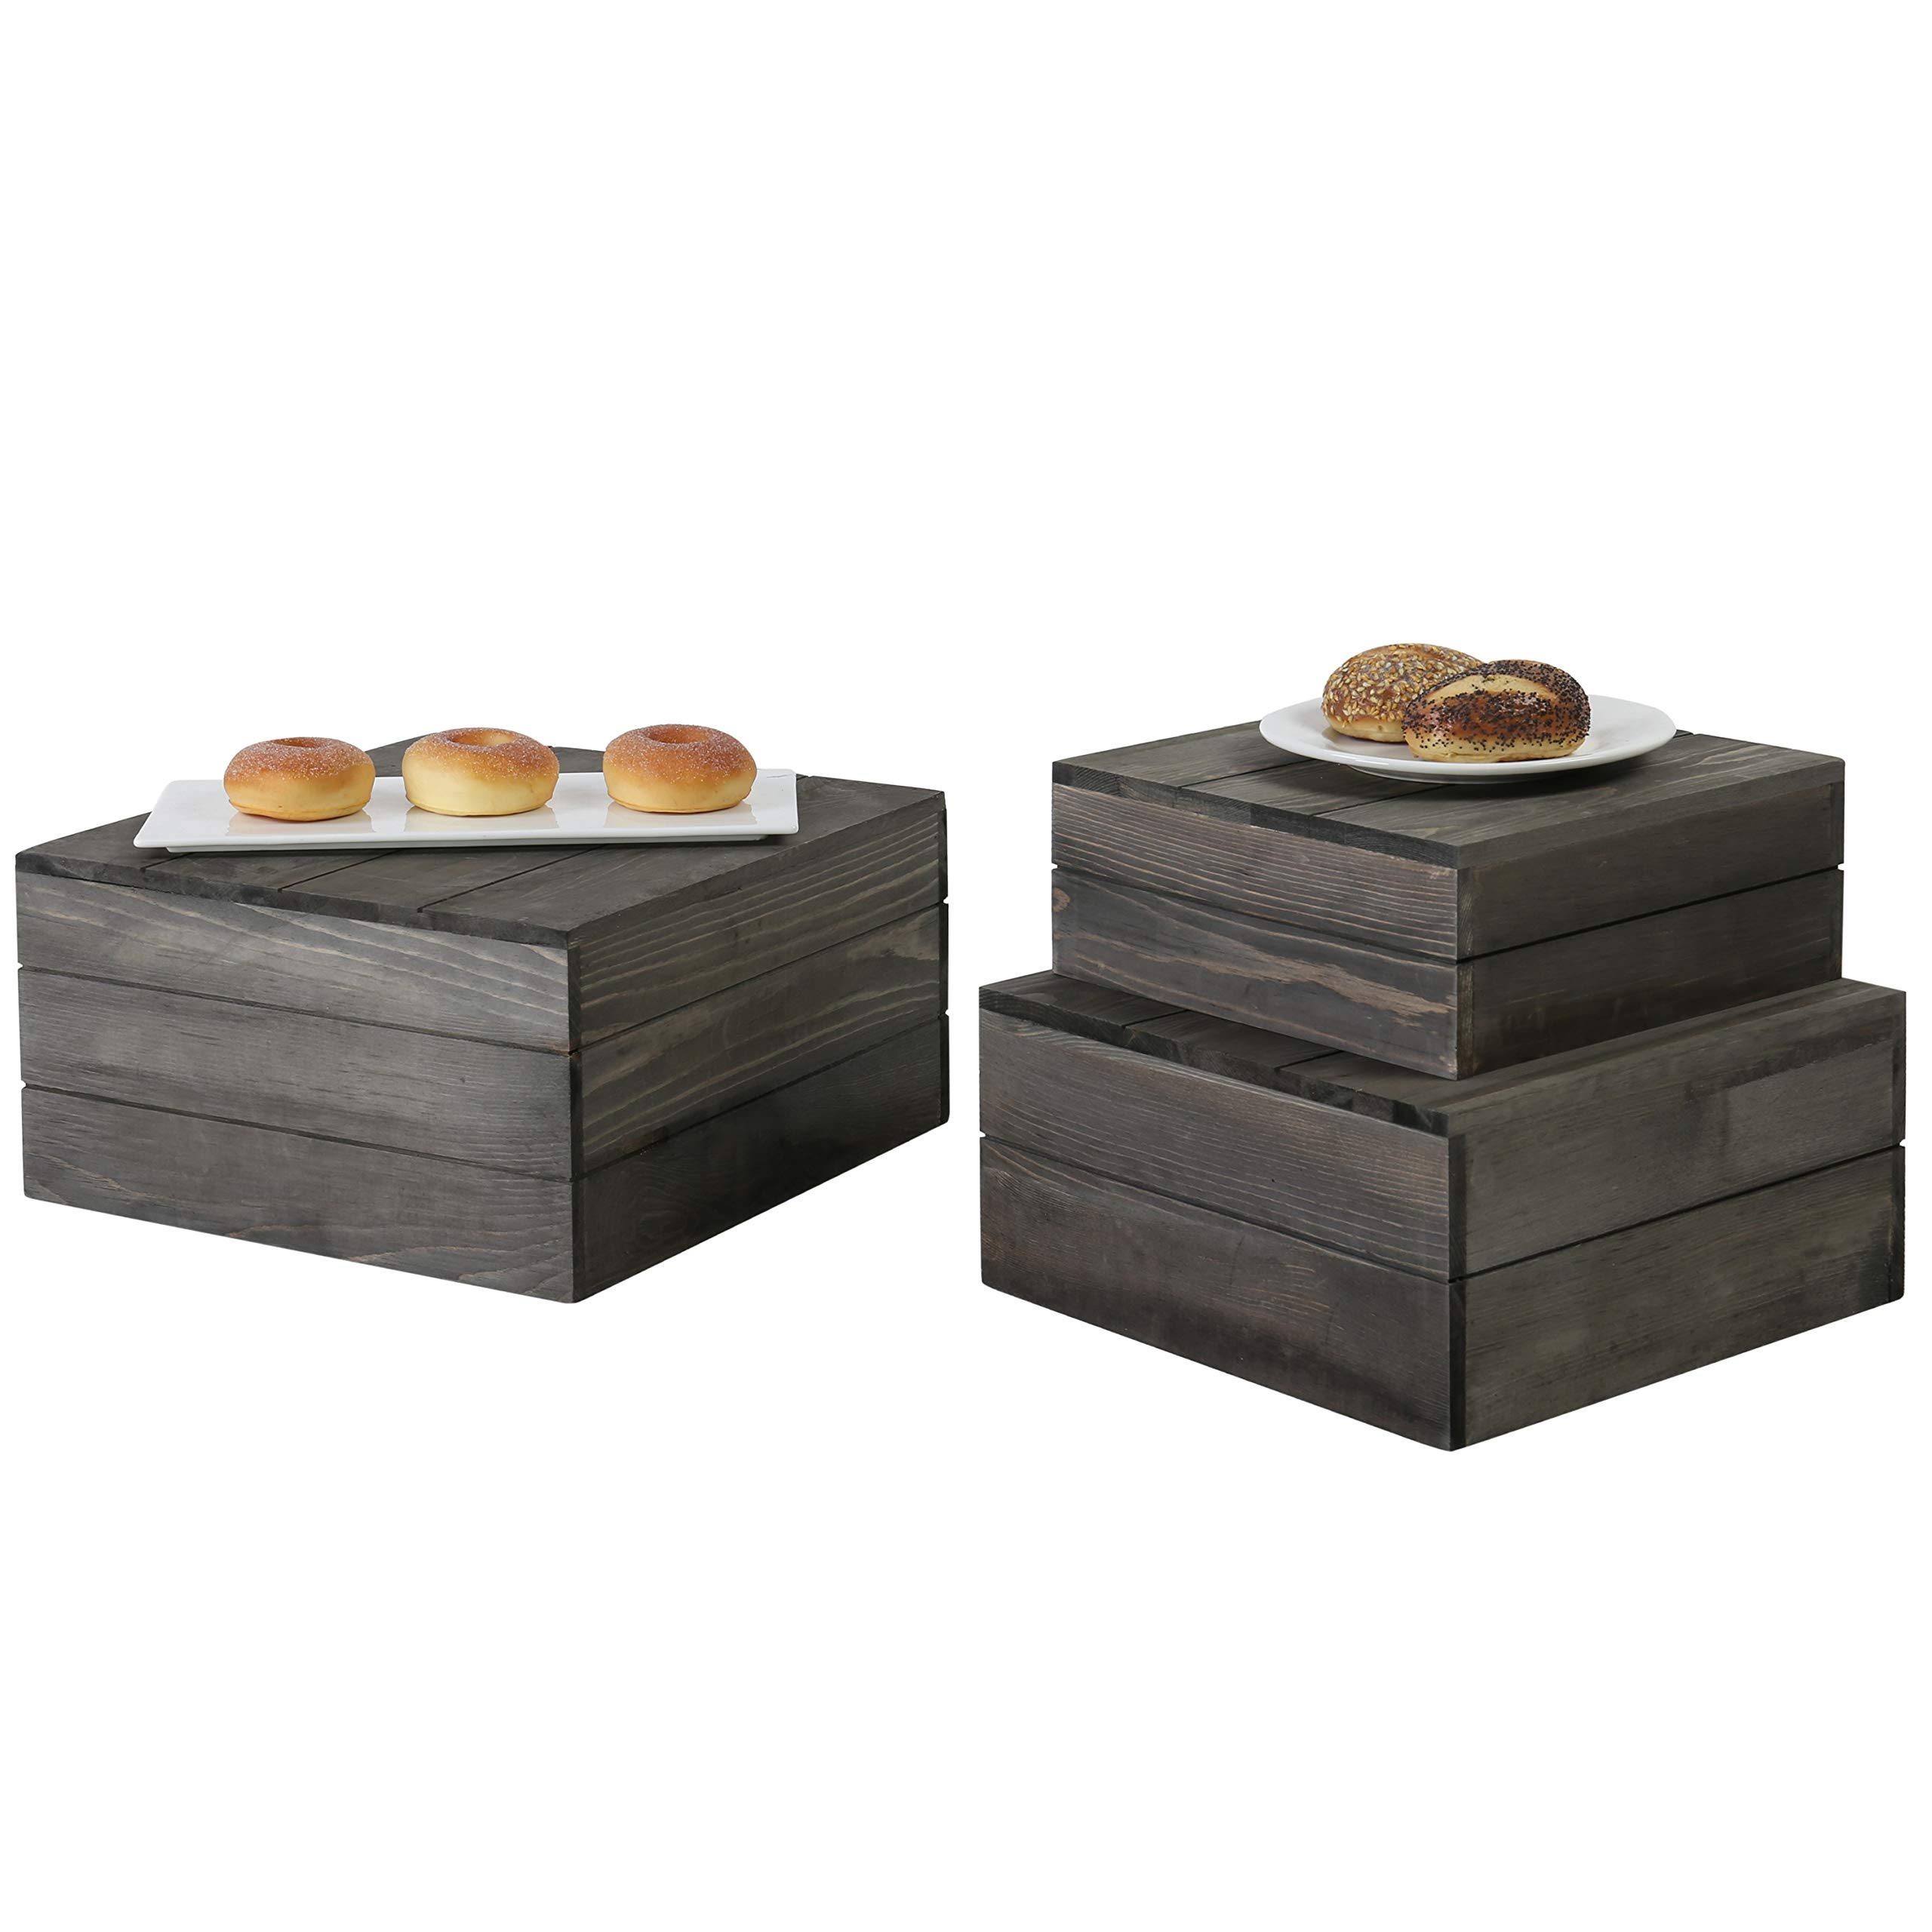 MyGift Rustic Gray Wood Crate Display Risers, Set of 3 by MyGift (Image #1)